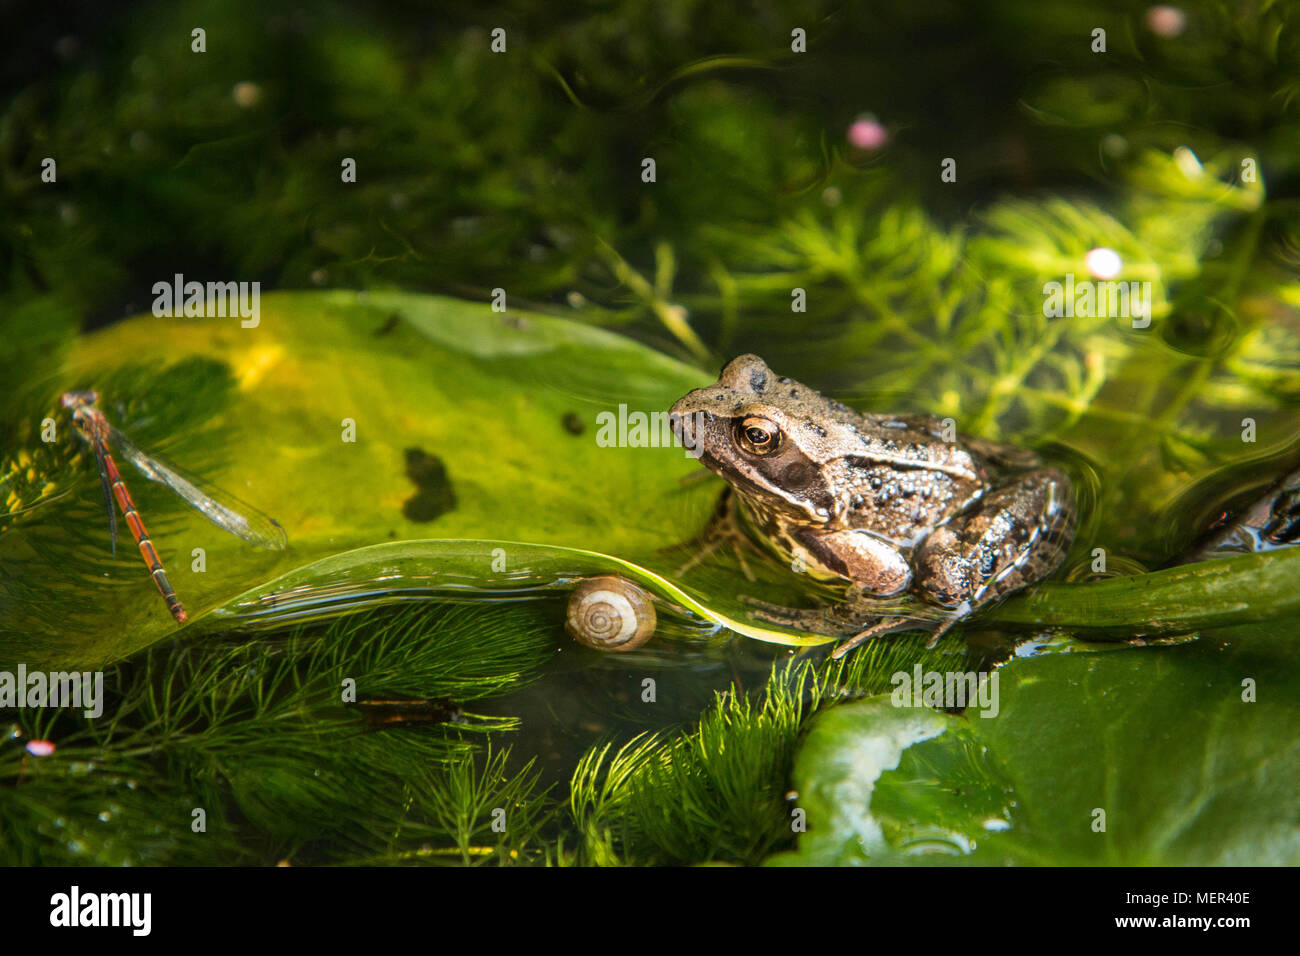 Common Frog - Rana temporaria - Stock Image